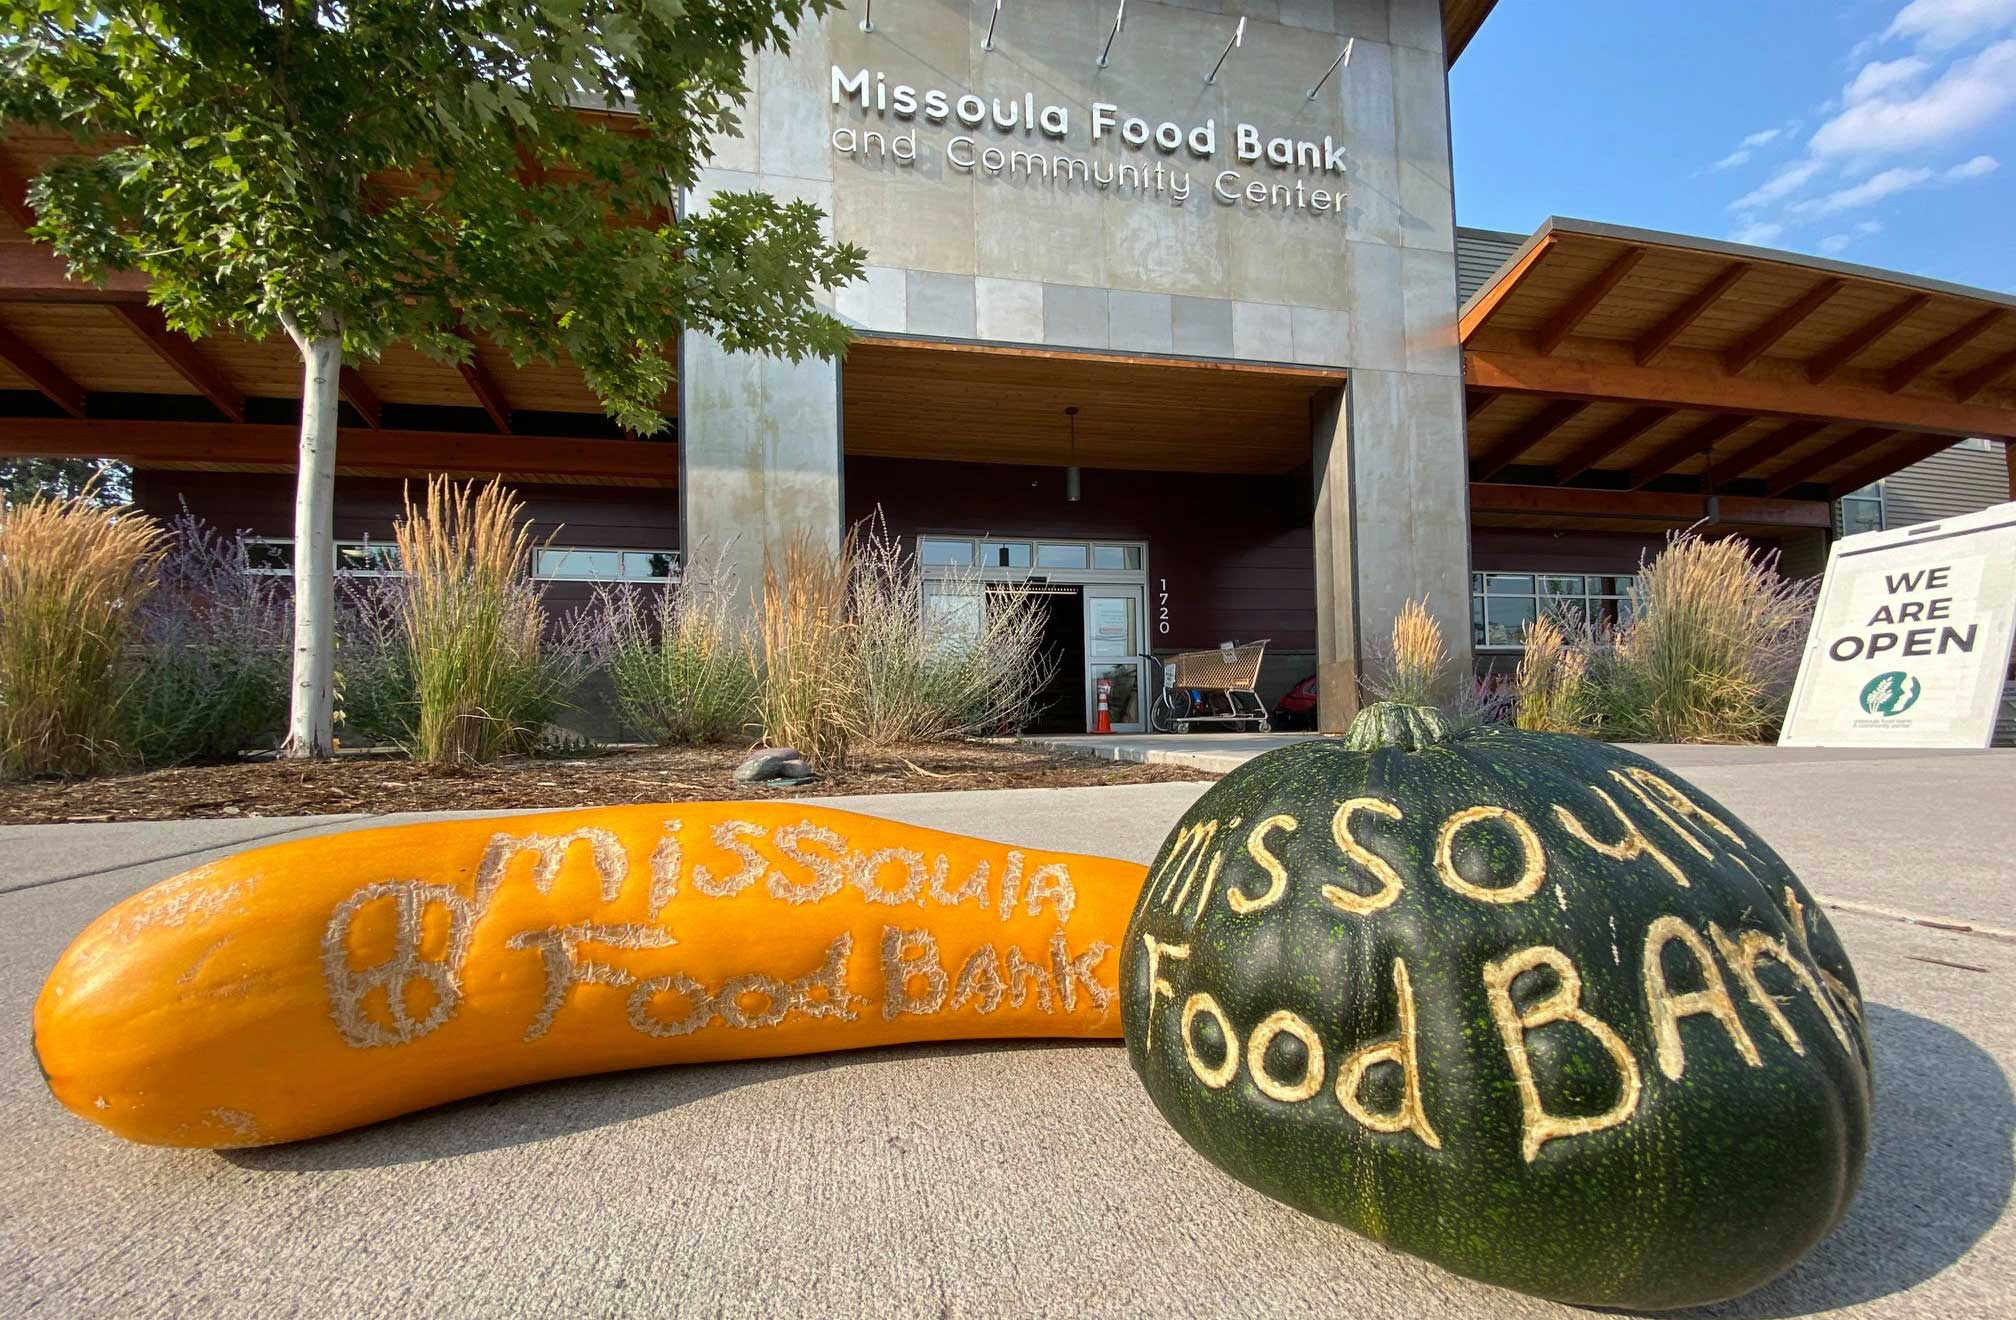 Gourds with 'Missoula Food Bank' carved into them sitting in front of the Missoula Food Bank.